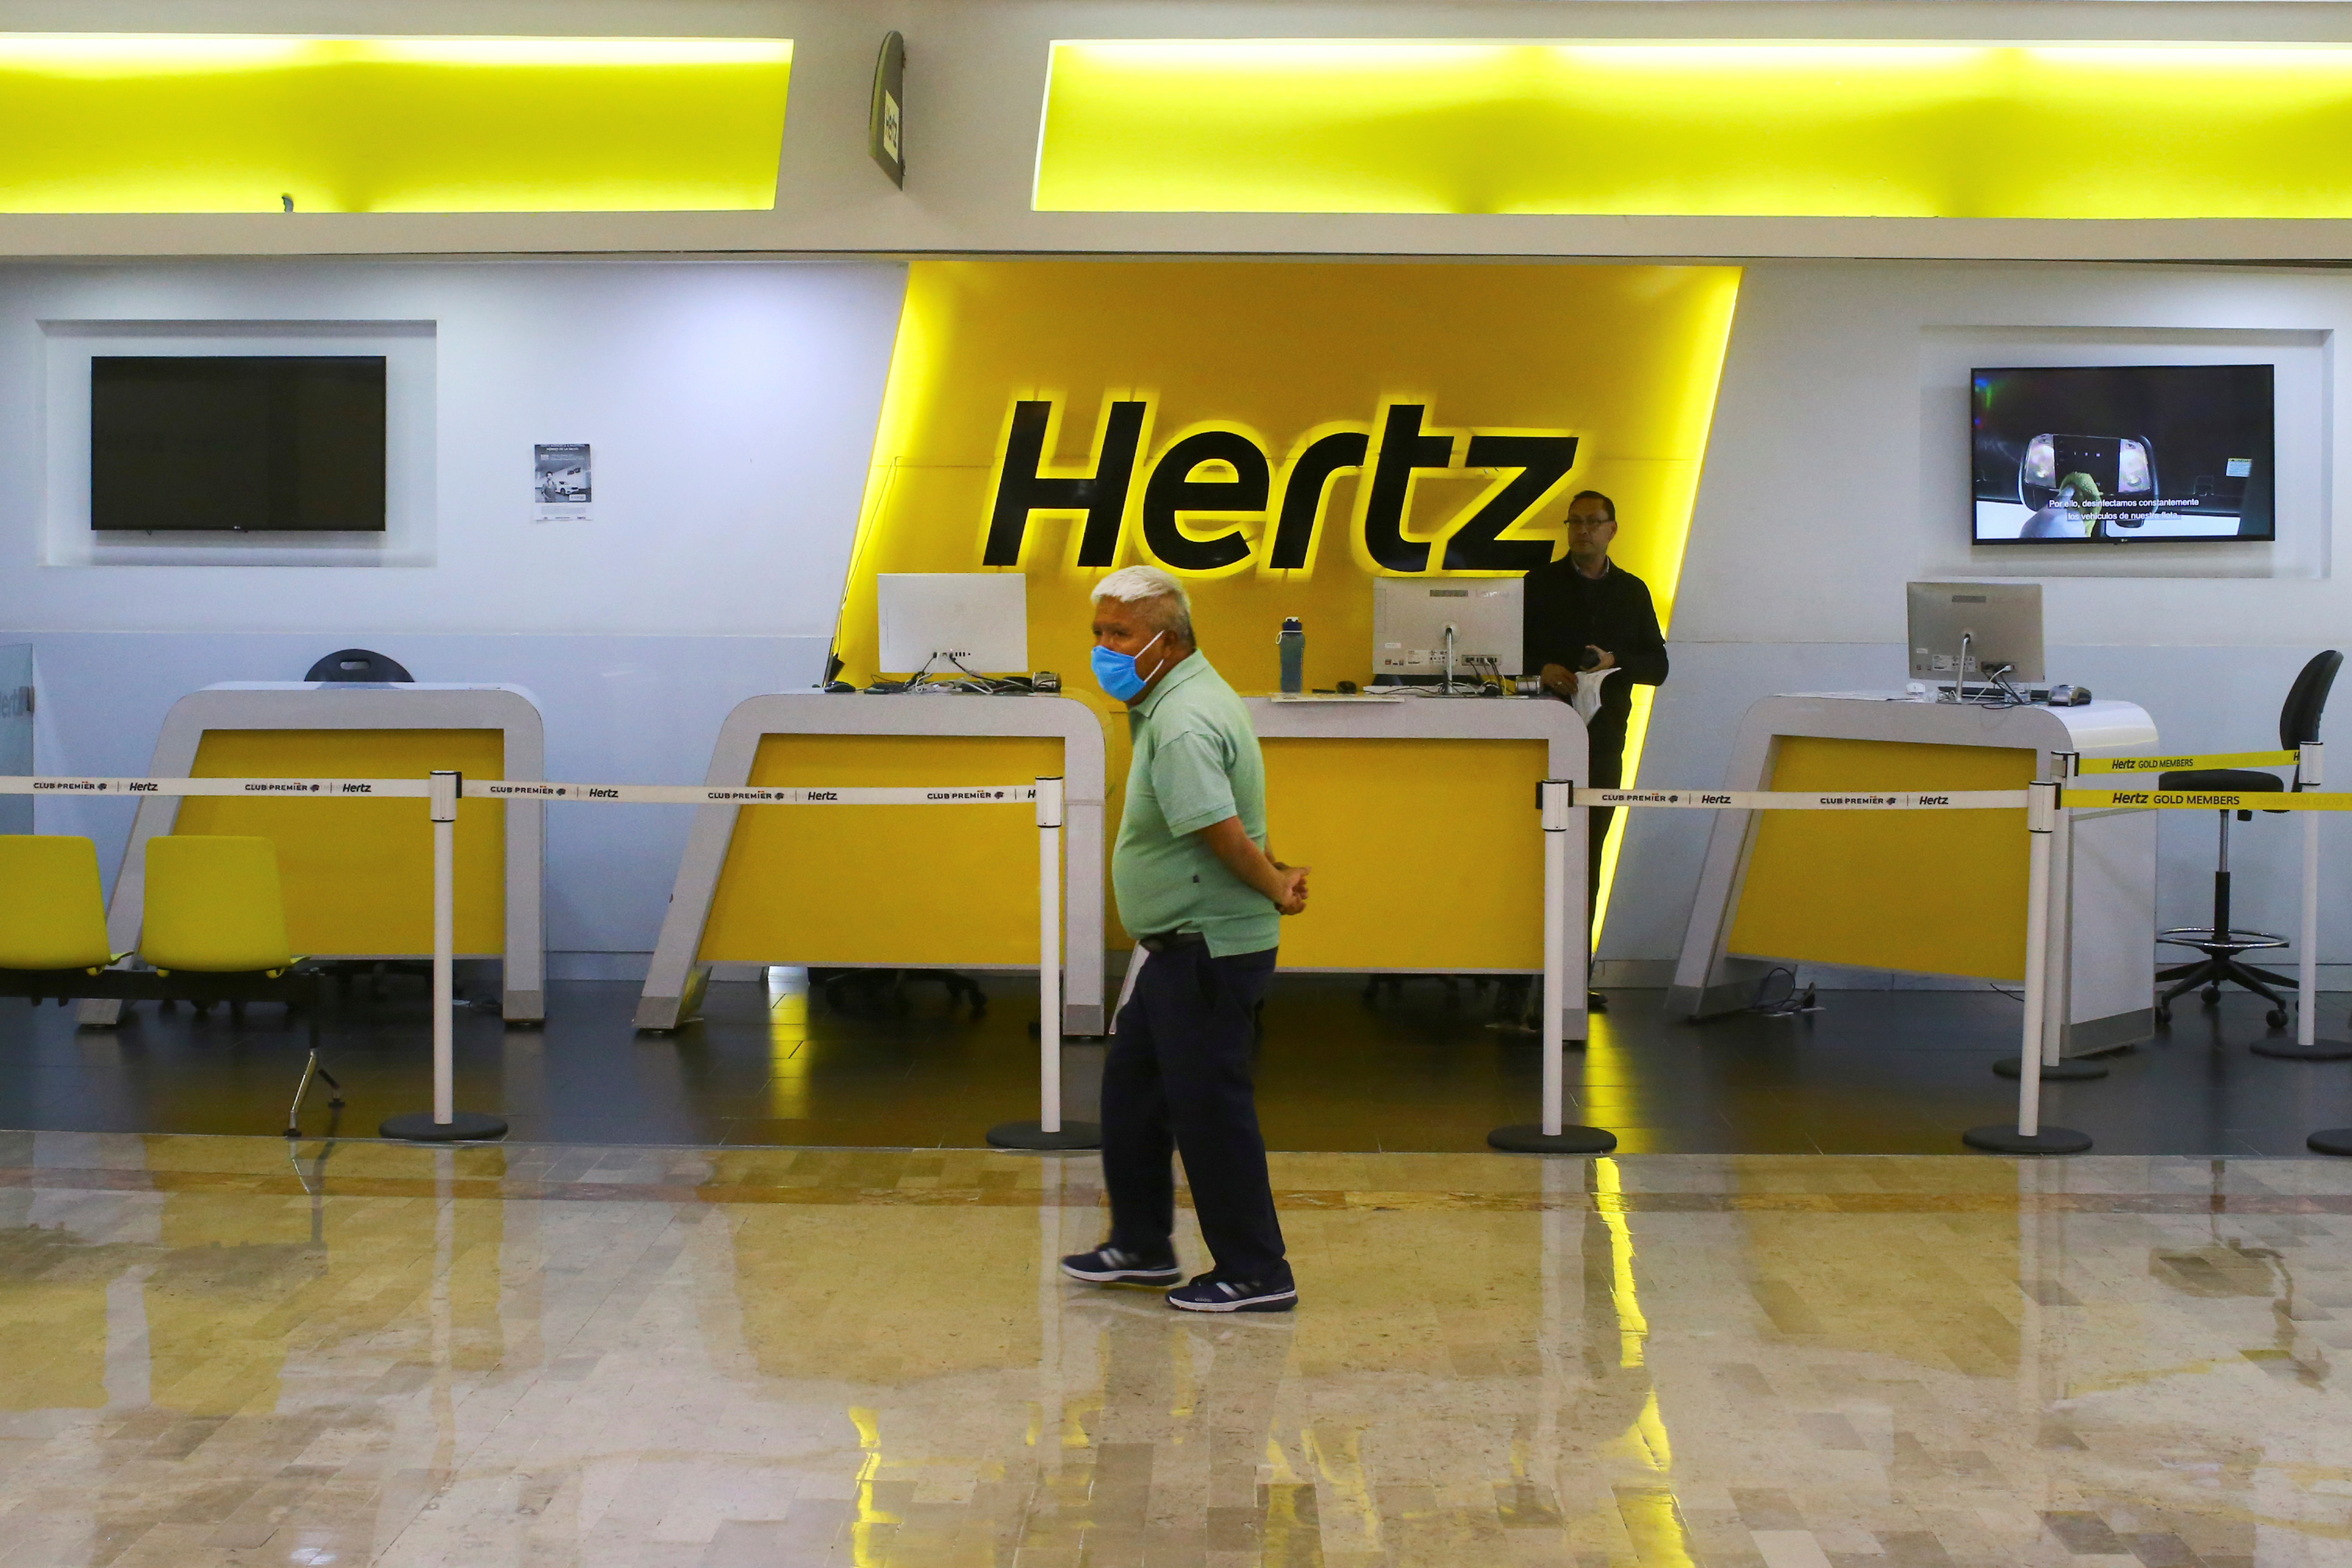 A passenger wearing a protective mask passes in front of a counter of the car rental company Hertz in Mexico City, Mexico, June 11, 2020. REUTERS/Edgard Garrido